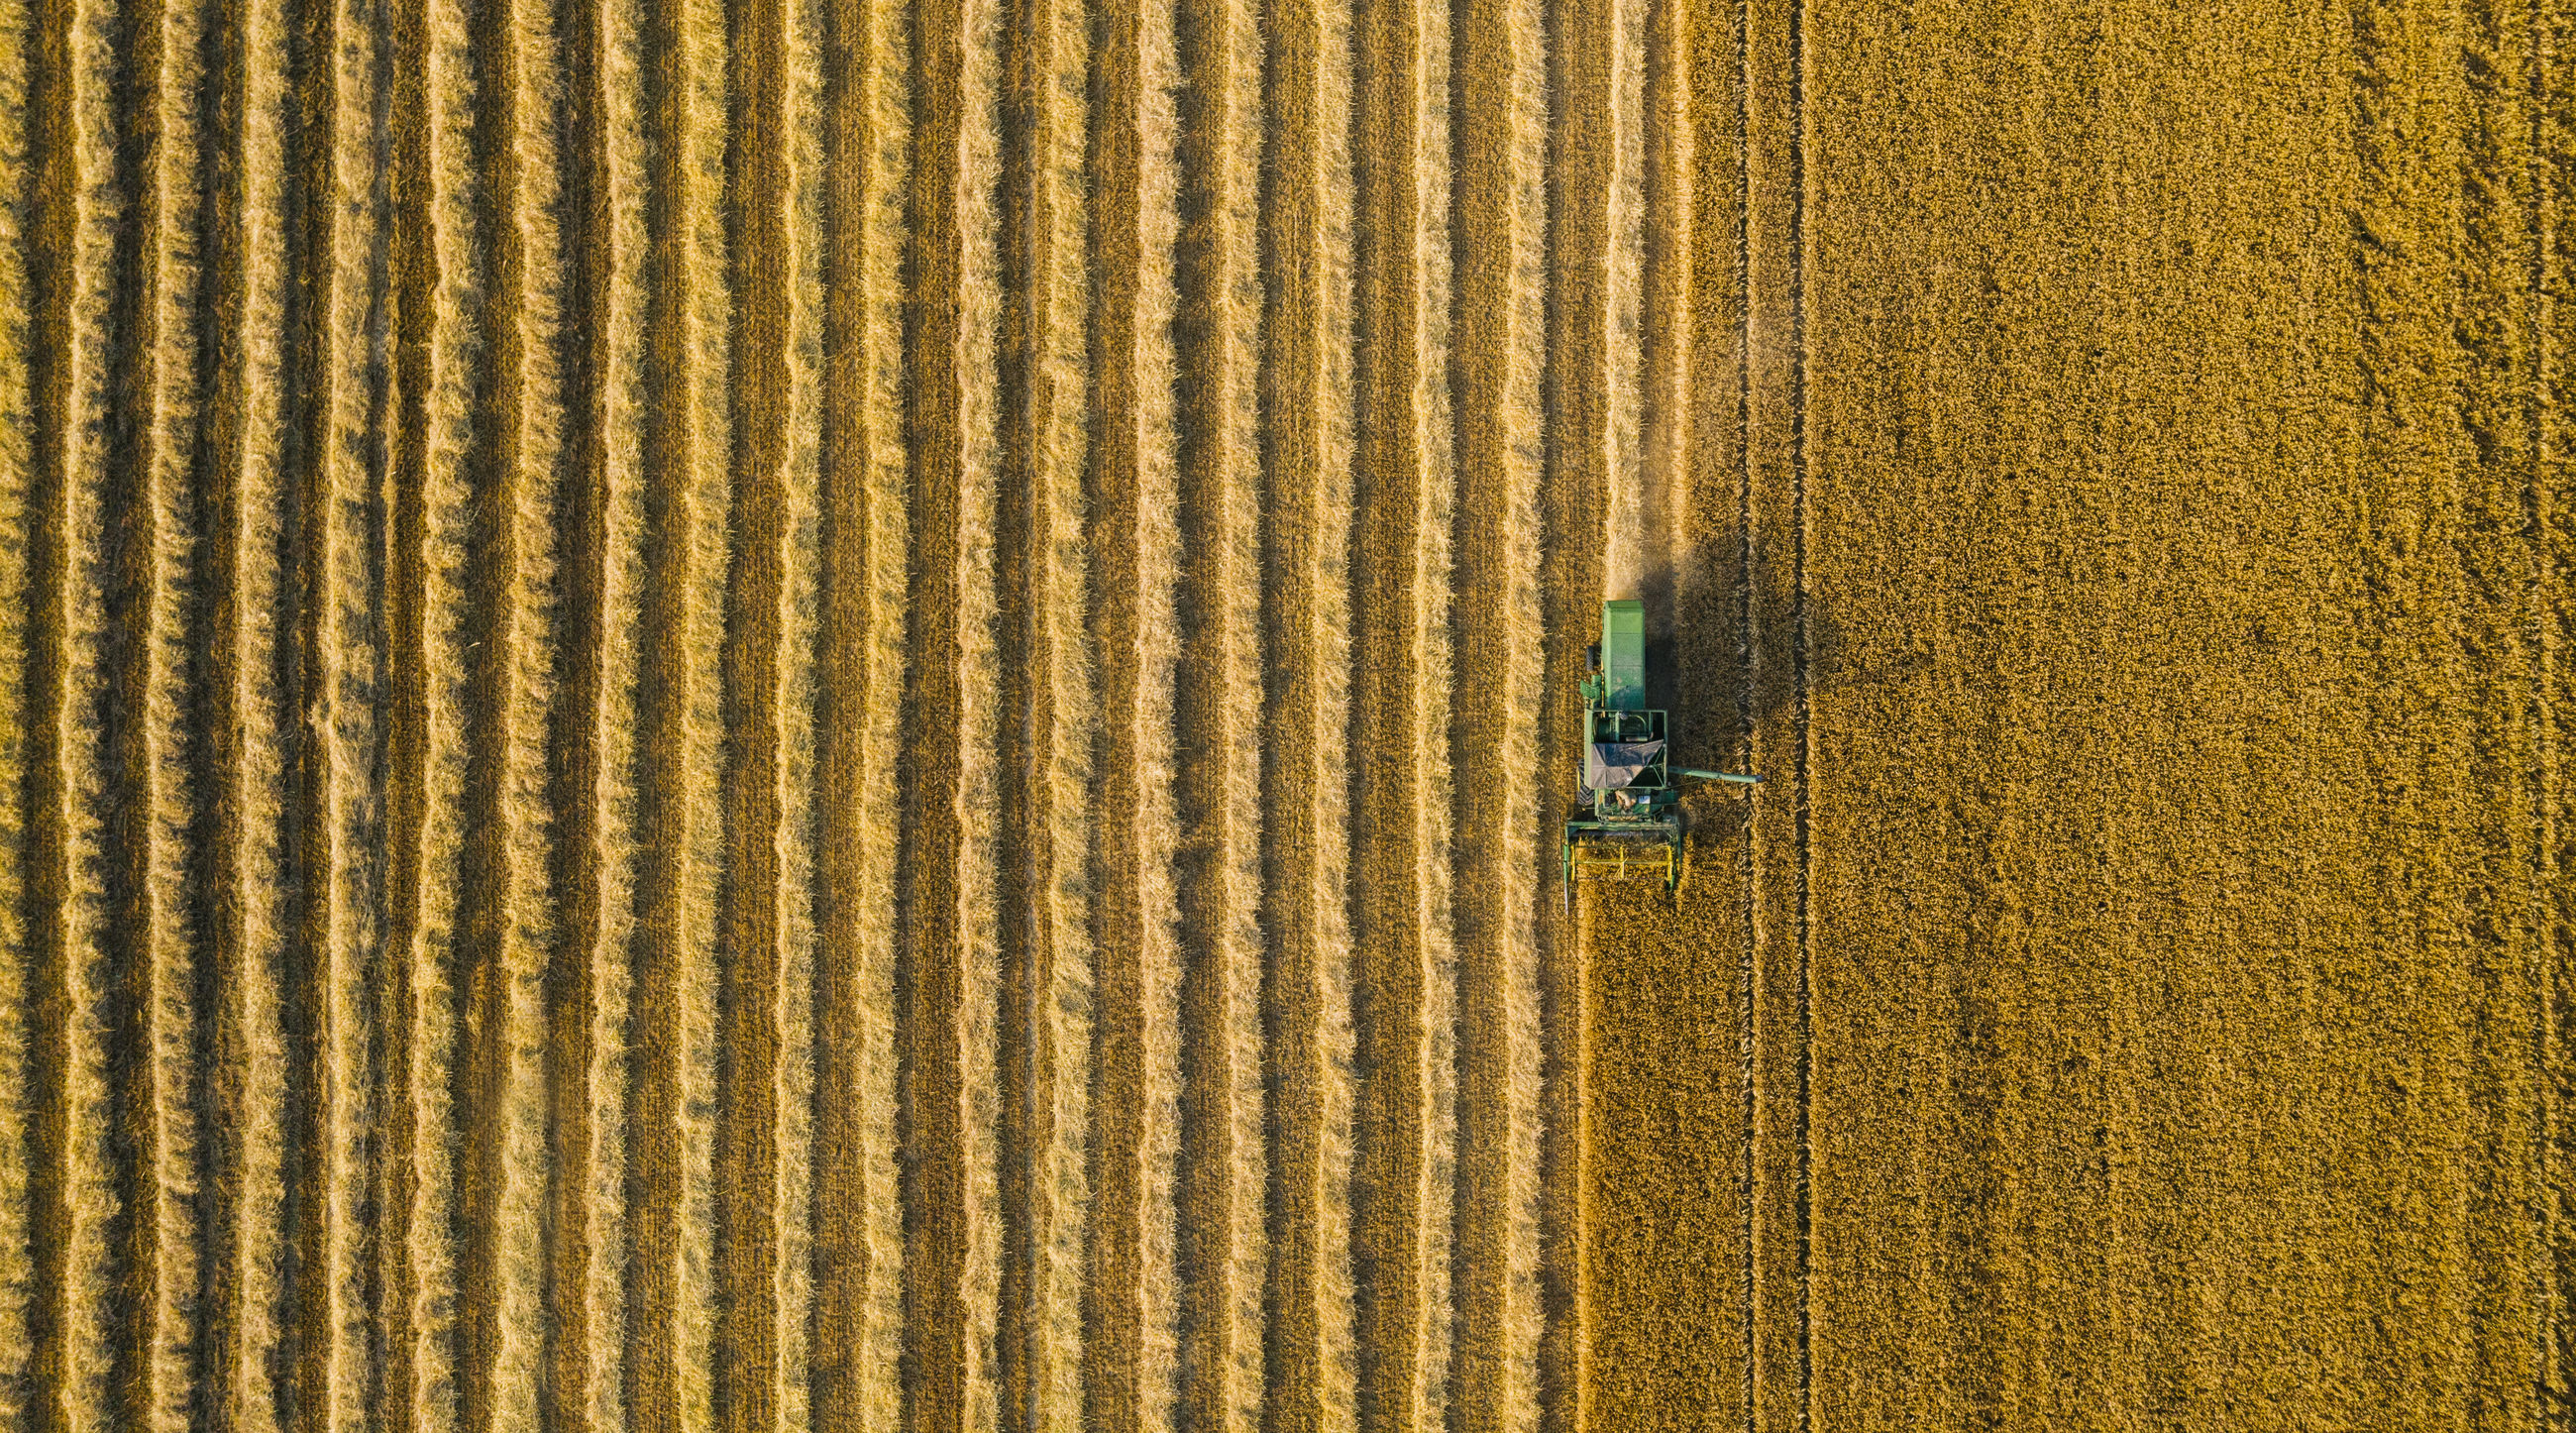 Aerial view of agriculture machinery on field